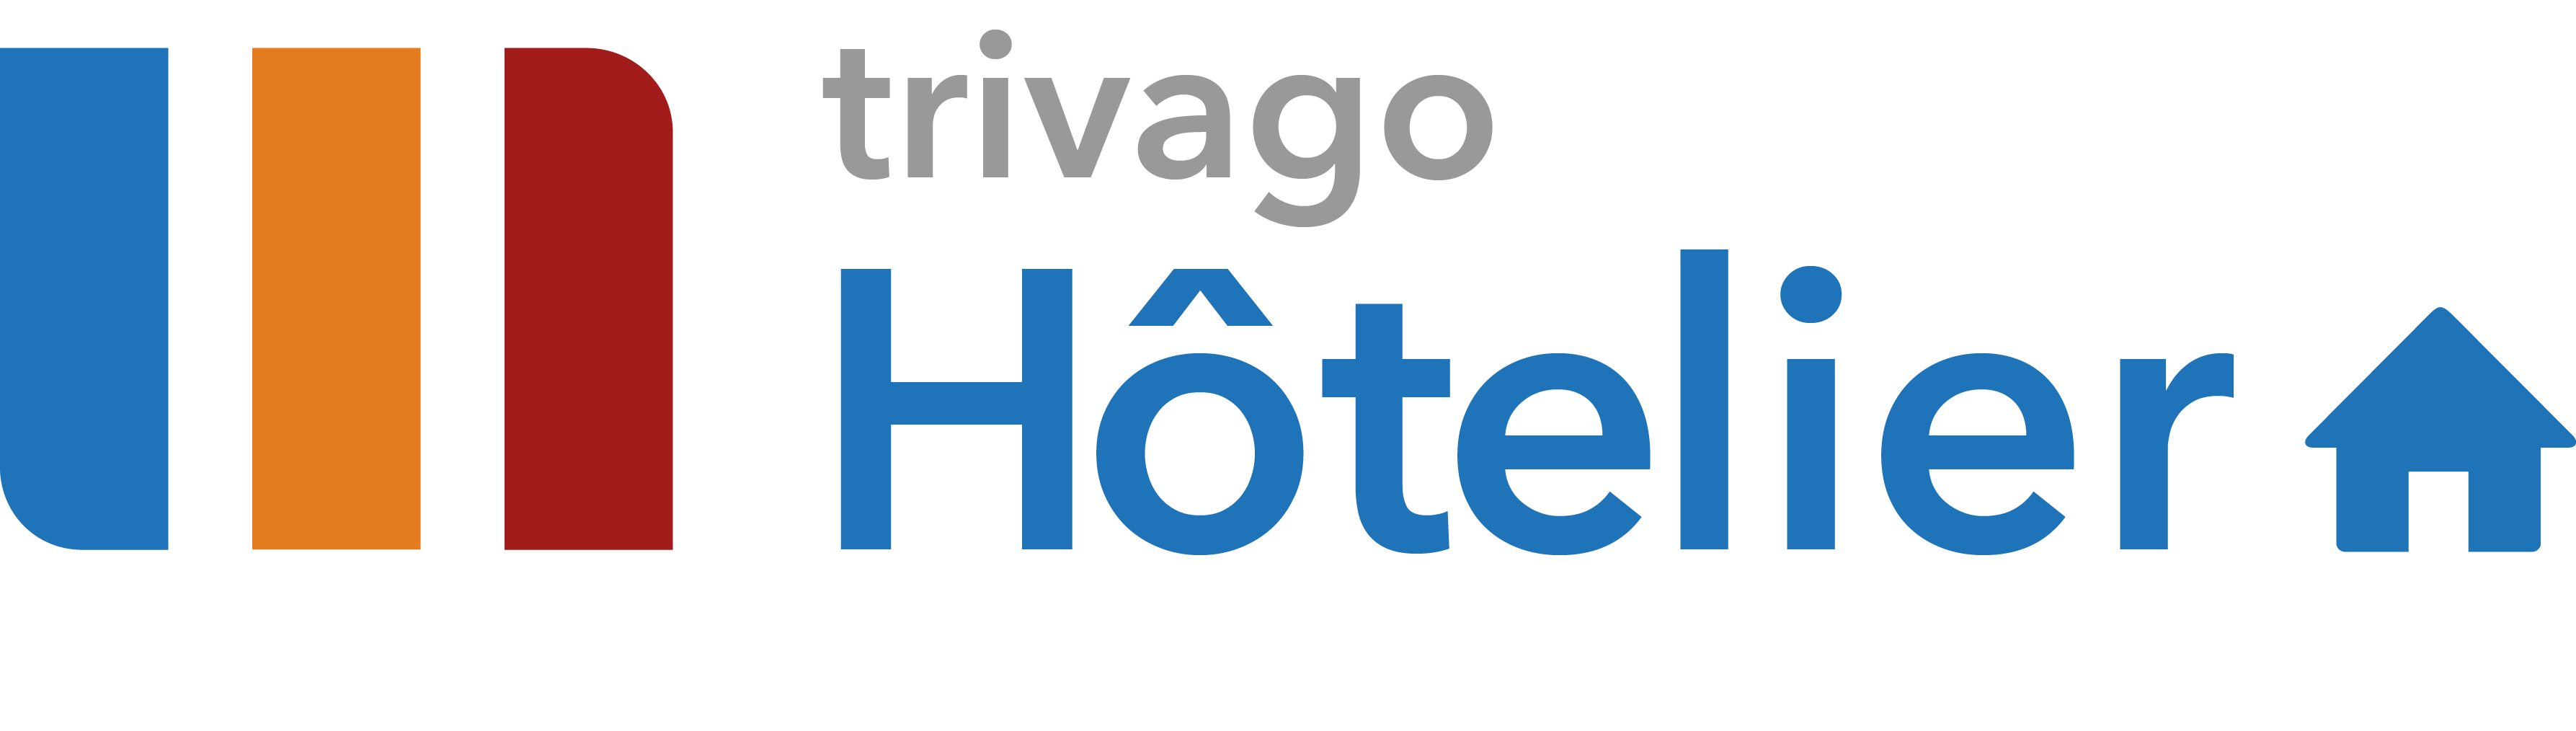 File:Trivago Hotelier Logo.png - Trivago Logo PNG